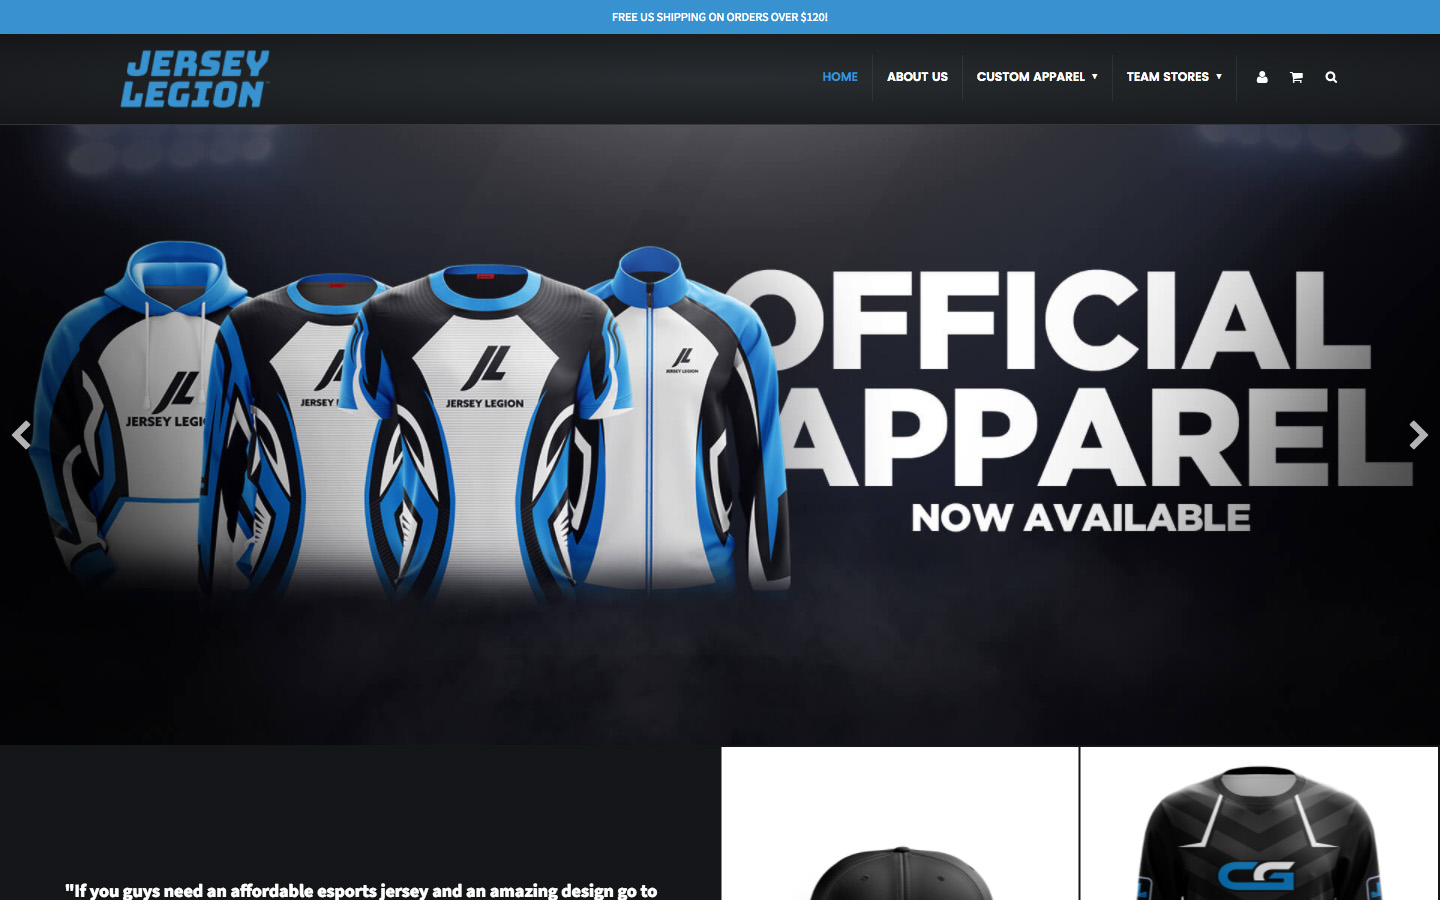 Web Design for JerseyLegion